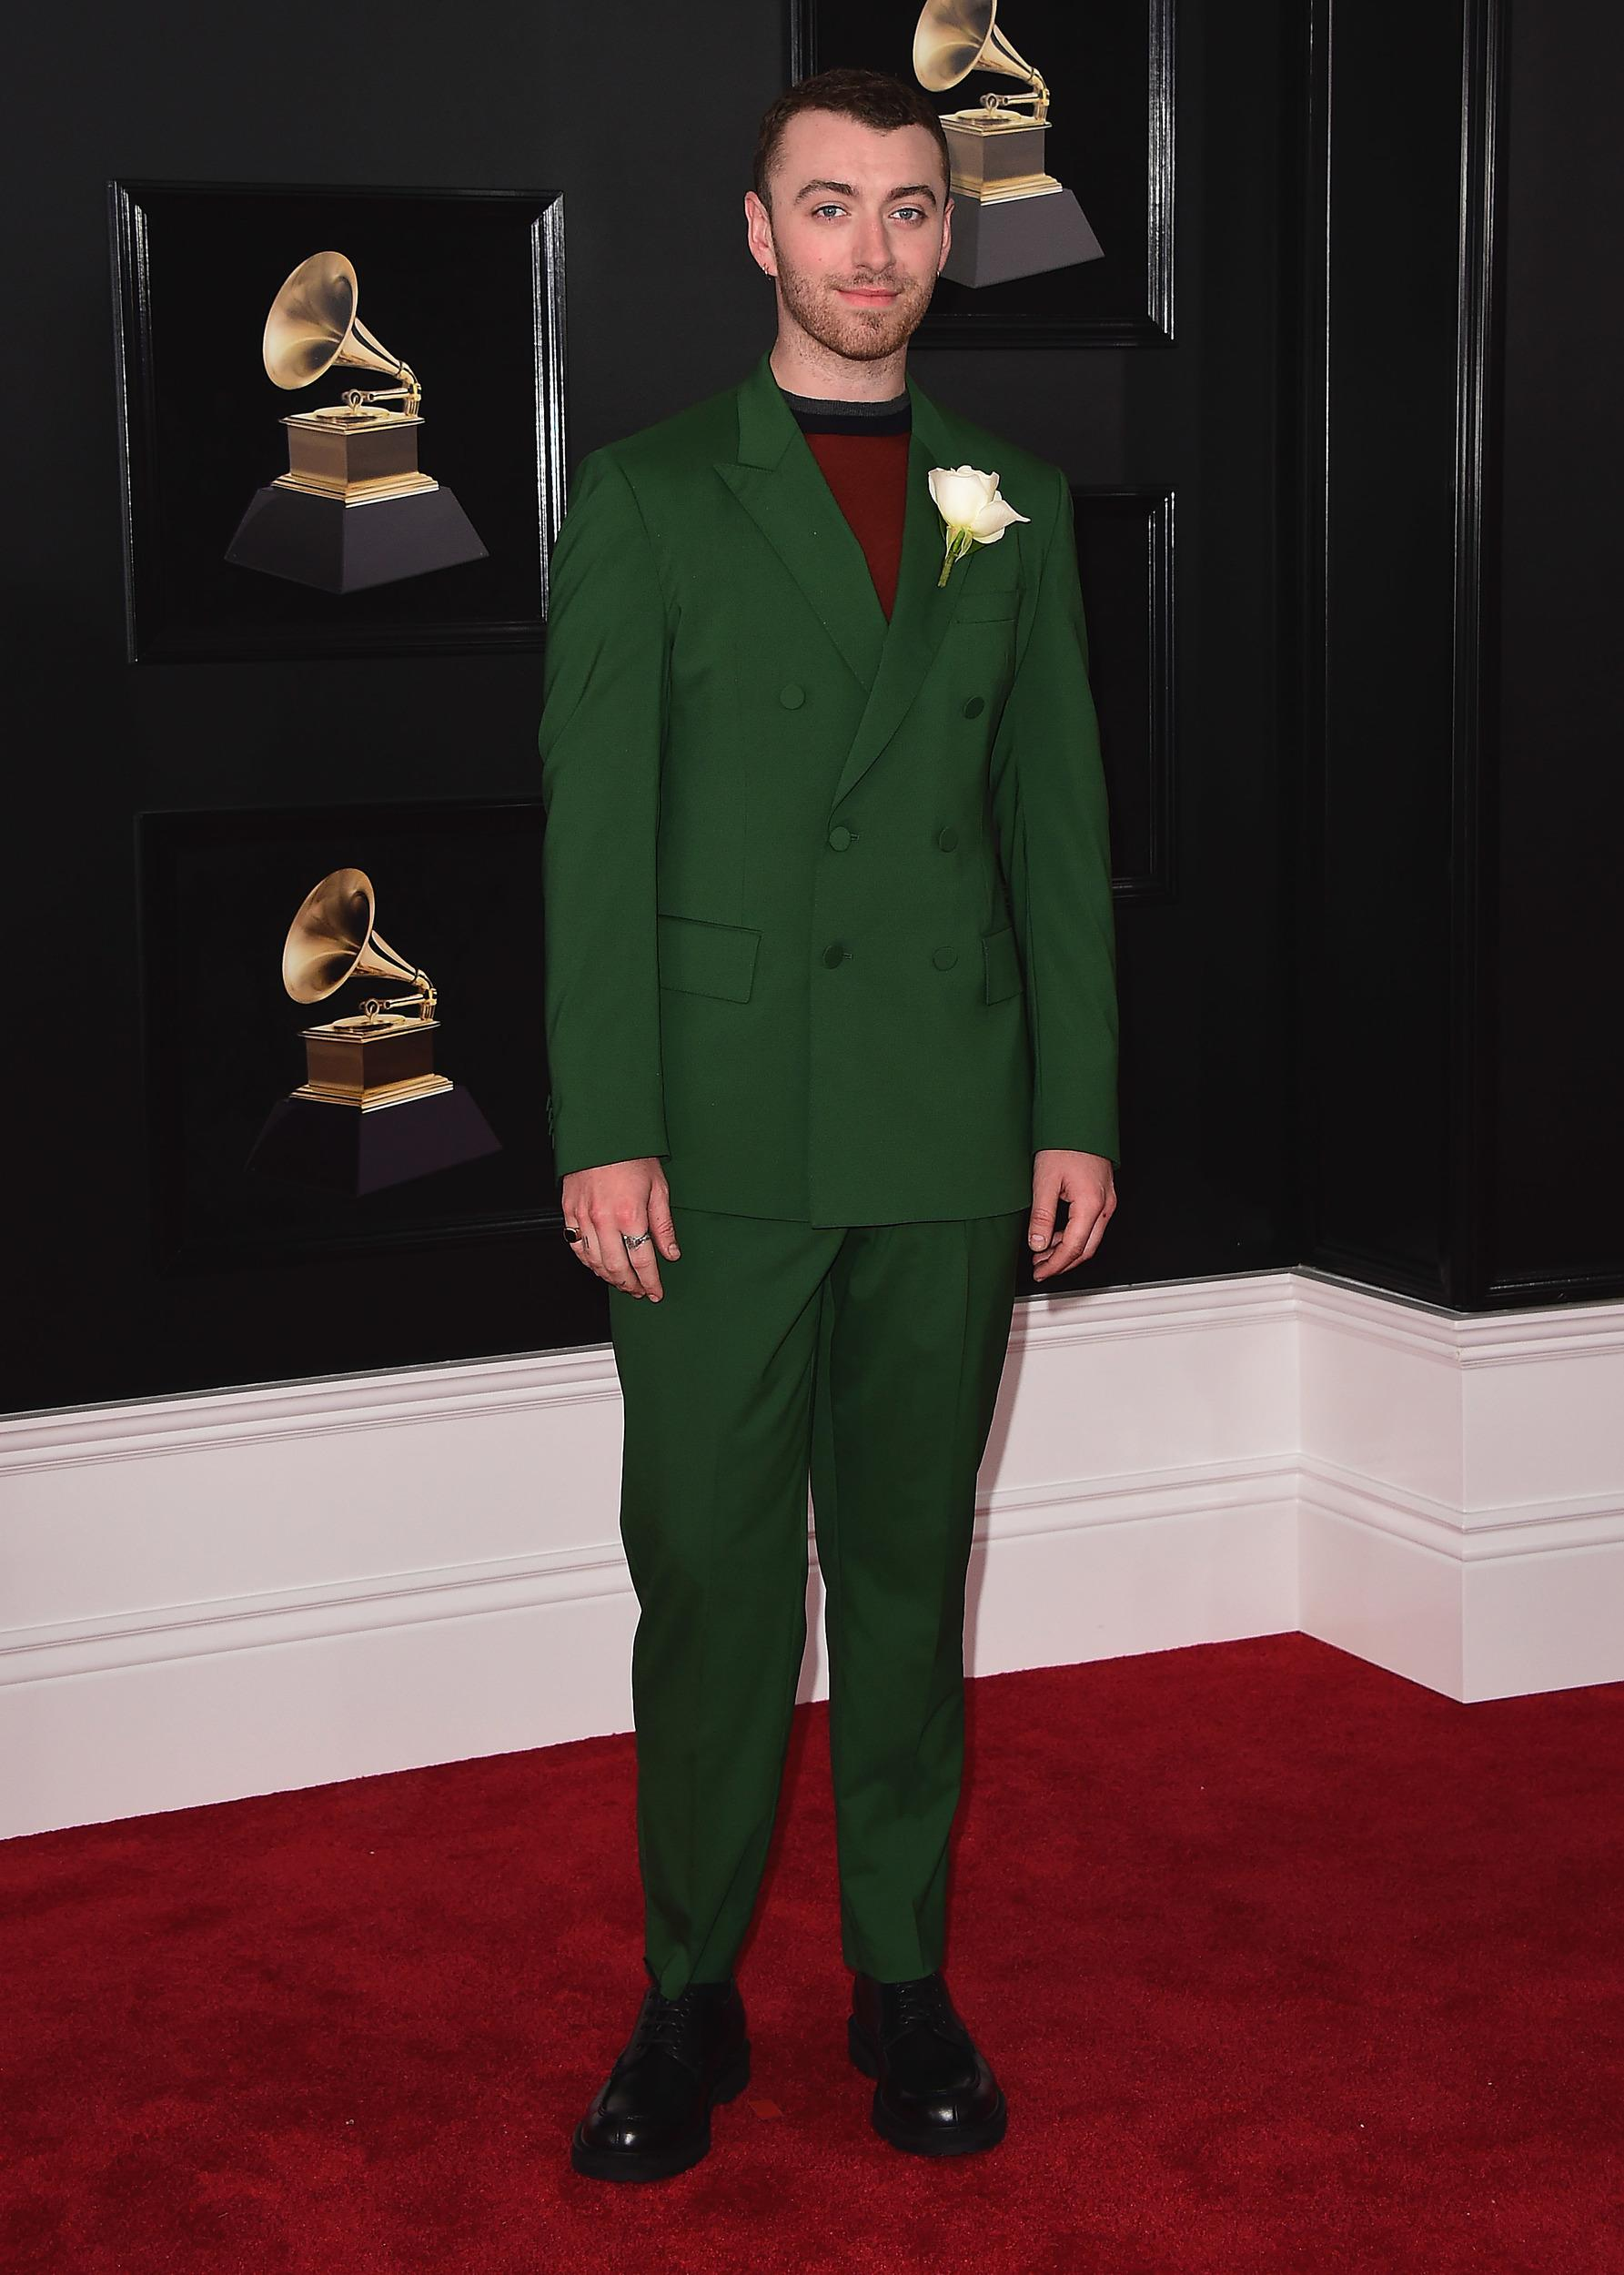 NEW YORK - JANUARY 28: Sam Smith at the 60th Annual Grammy Awards at Madison Square Garden on January 28, 2018 in New York City. (Photo by Scott Kirkland/PictureGroup)